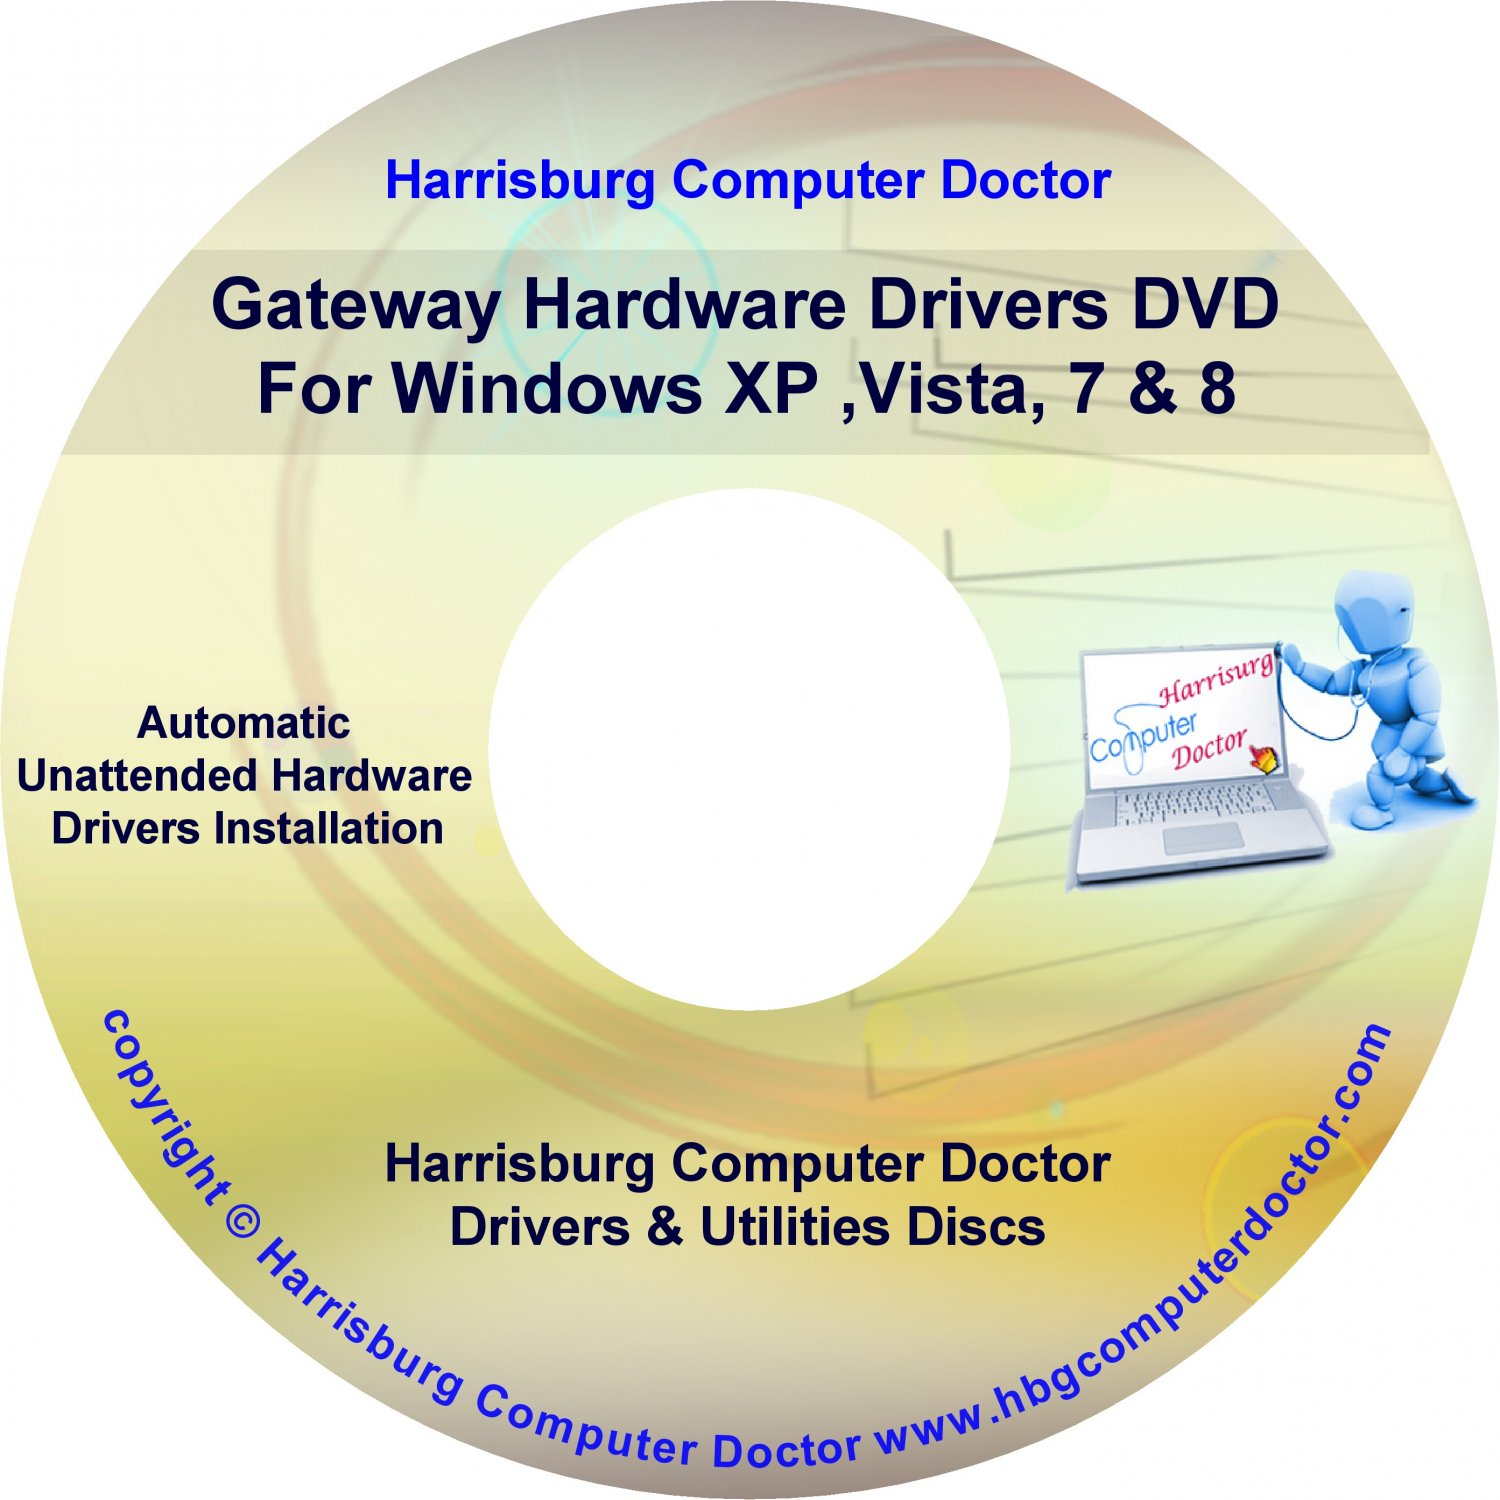 Gateway Solo 9150 Drivers DVD For Windows, XP, Vista, 7 & 8